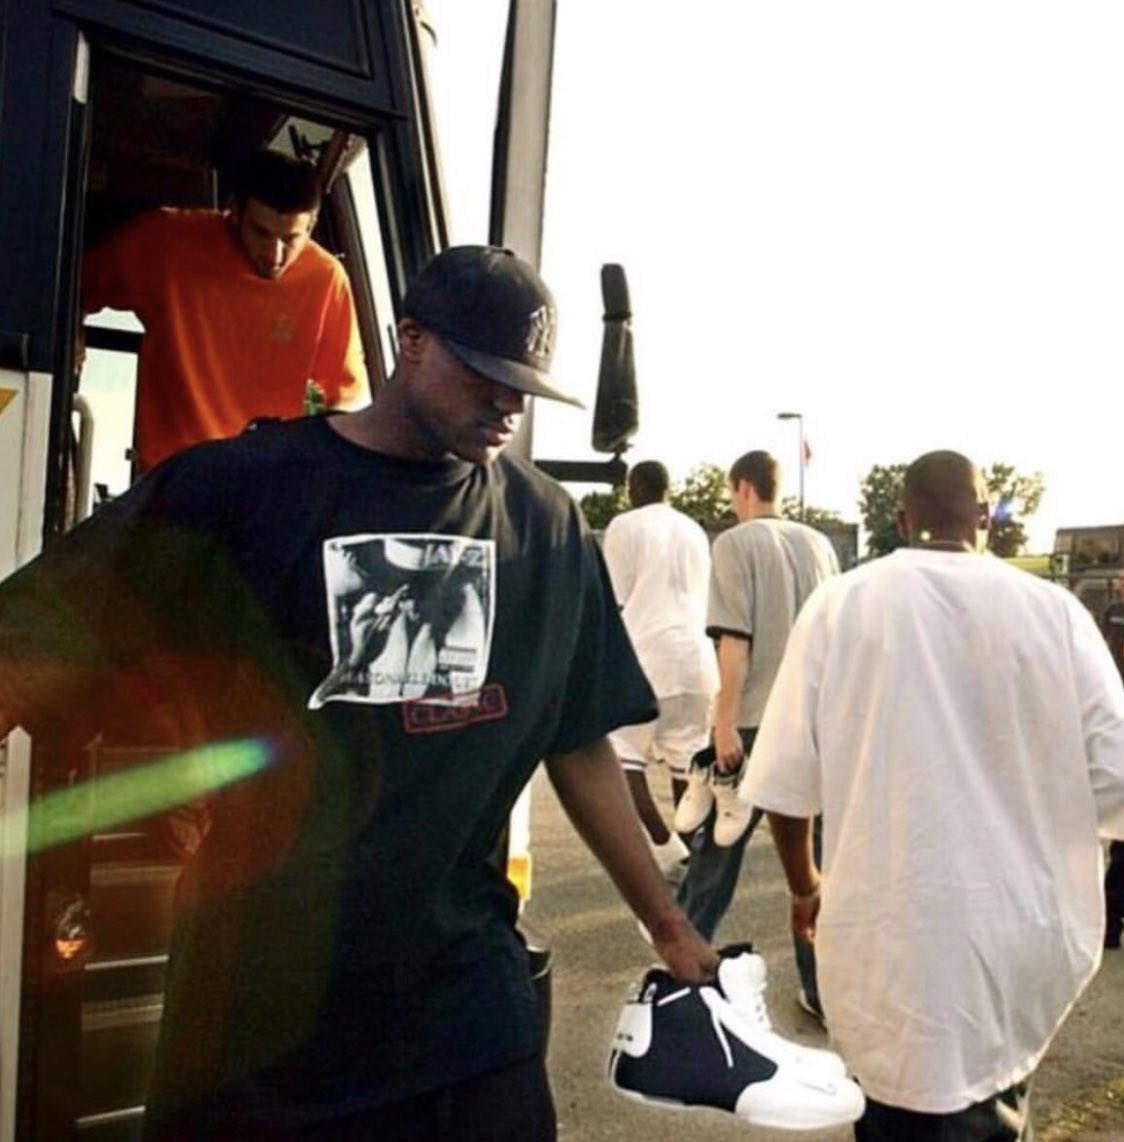 Jay-Z dropped 'Reasonable Doubt' on this date in 1996. Here's rookie LeBron getting off the bus at summer league wearing a shirt with the album cover. 🐐